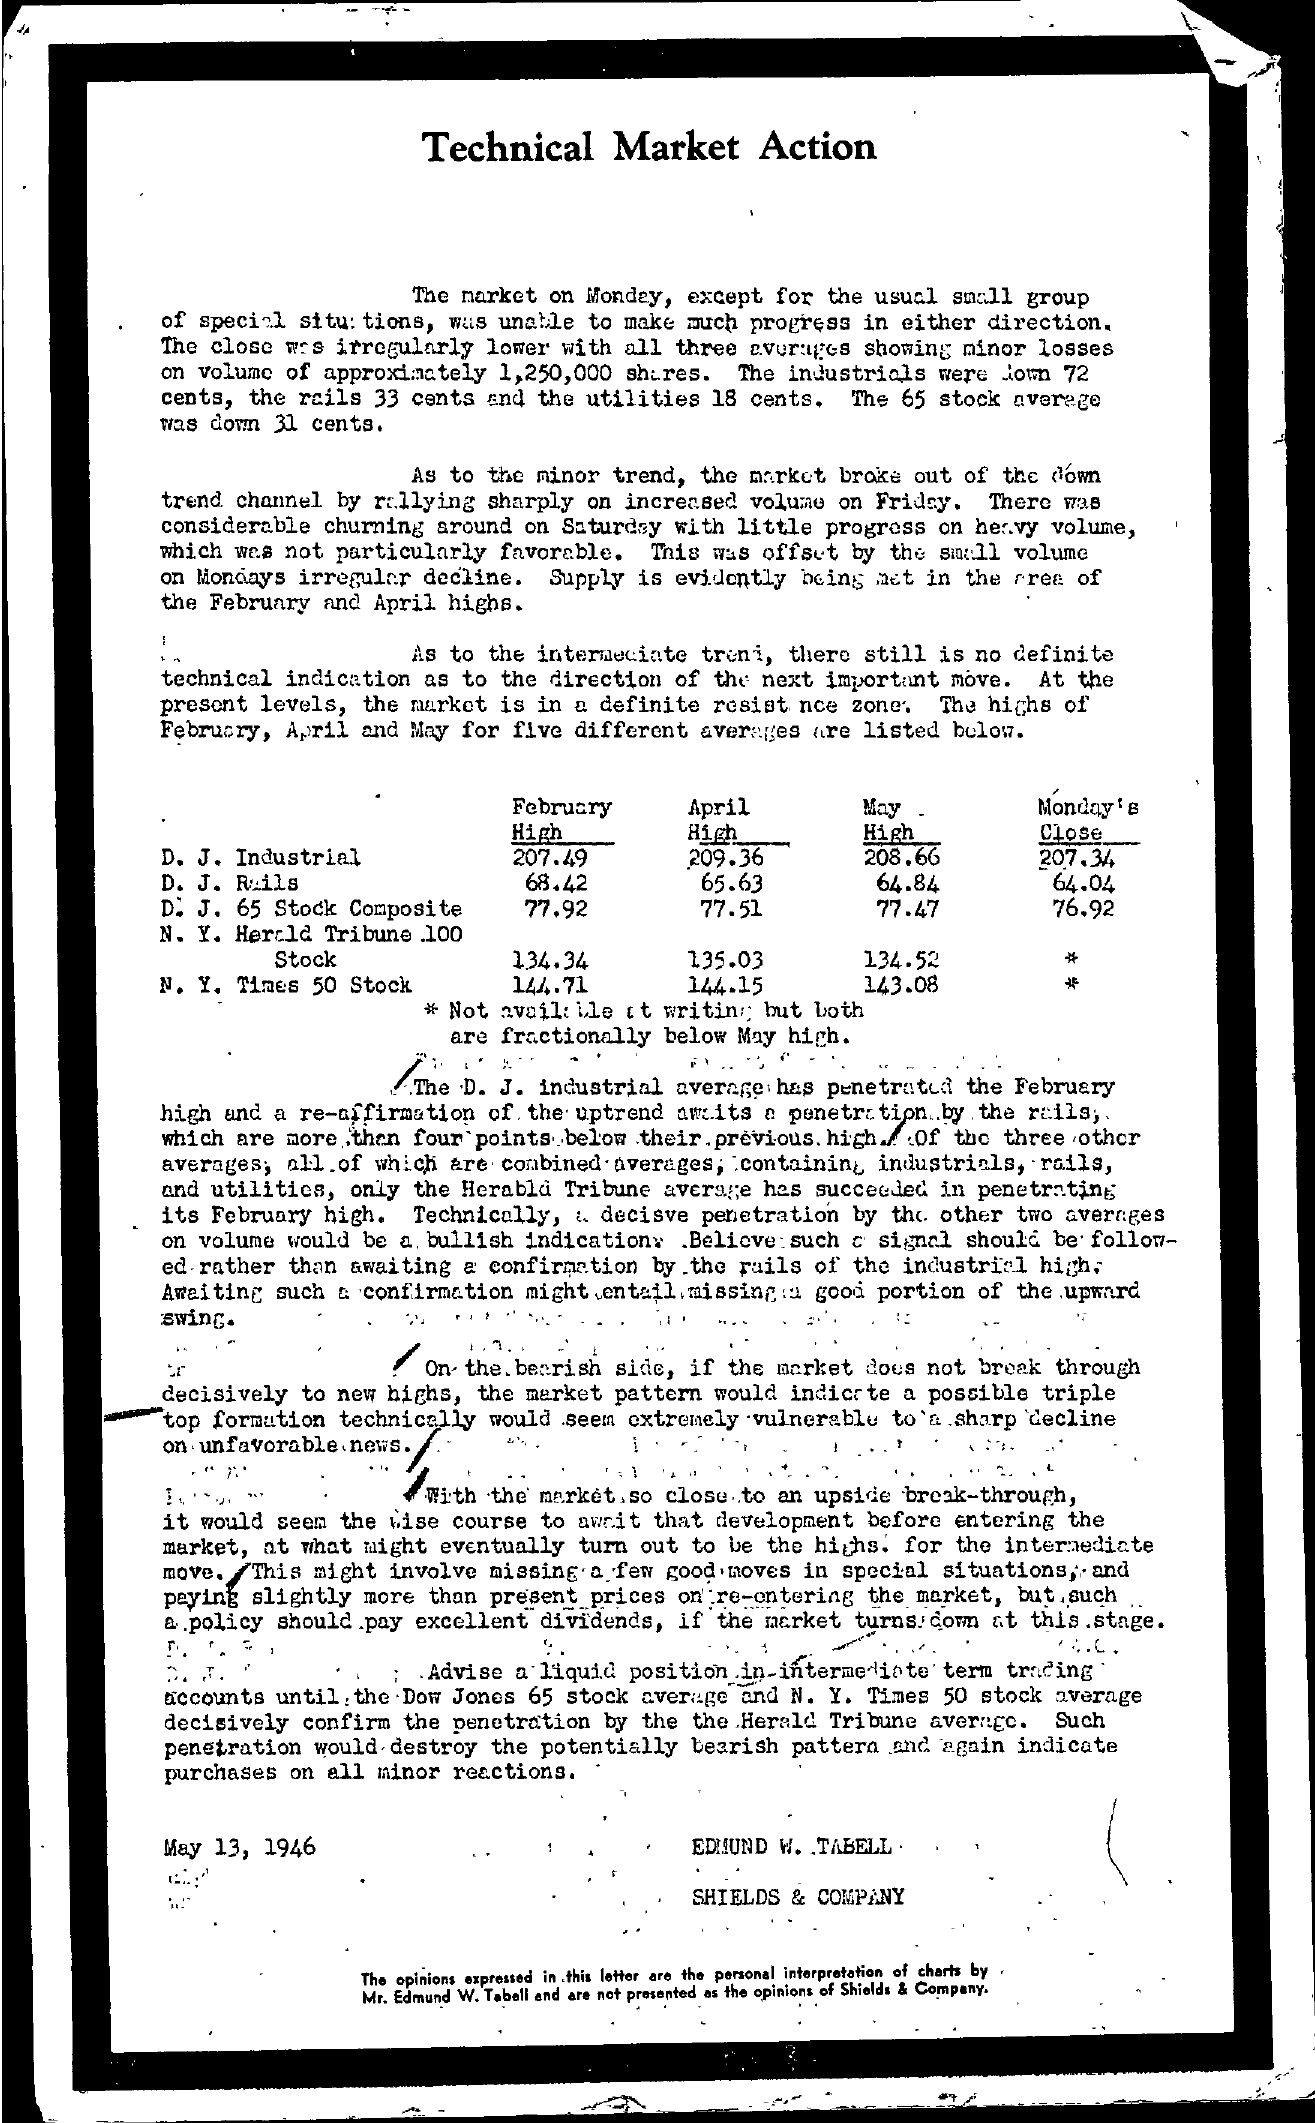 Tabell's Market Letter - May 13, 1946